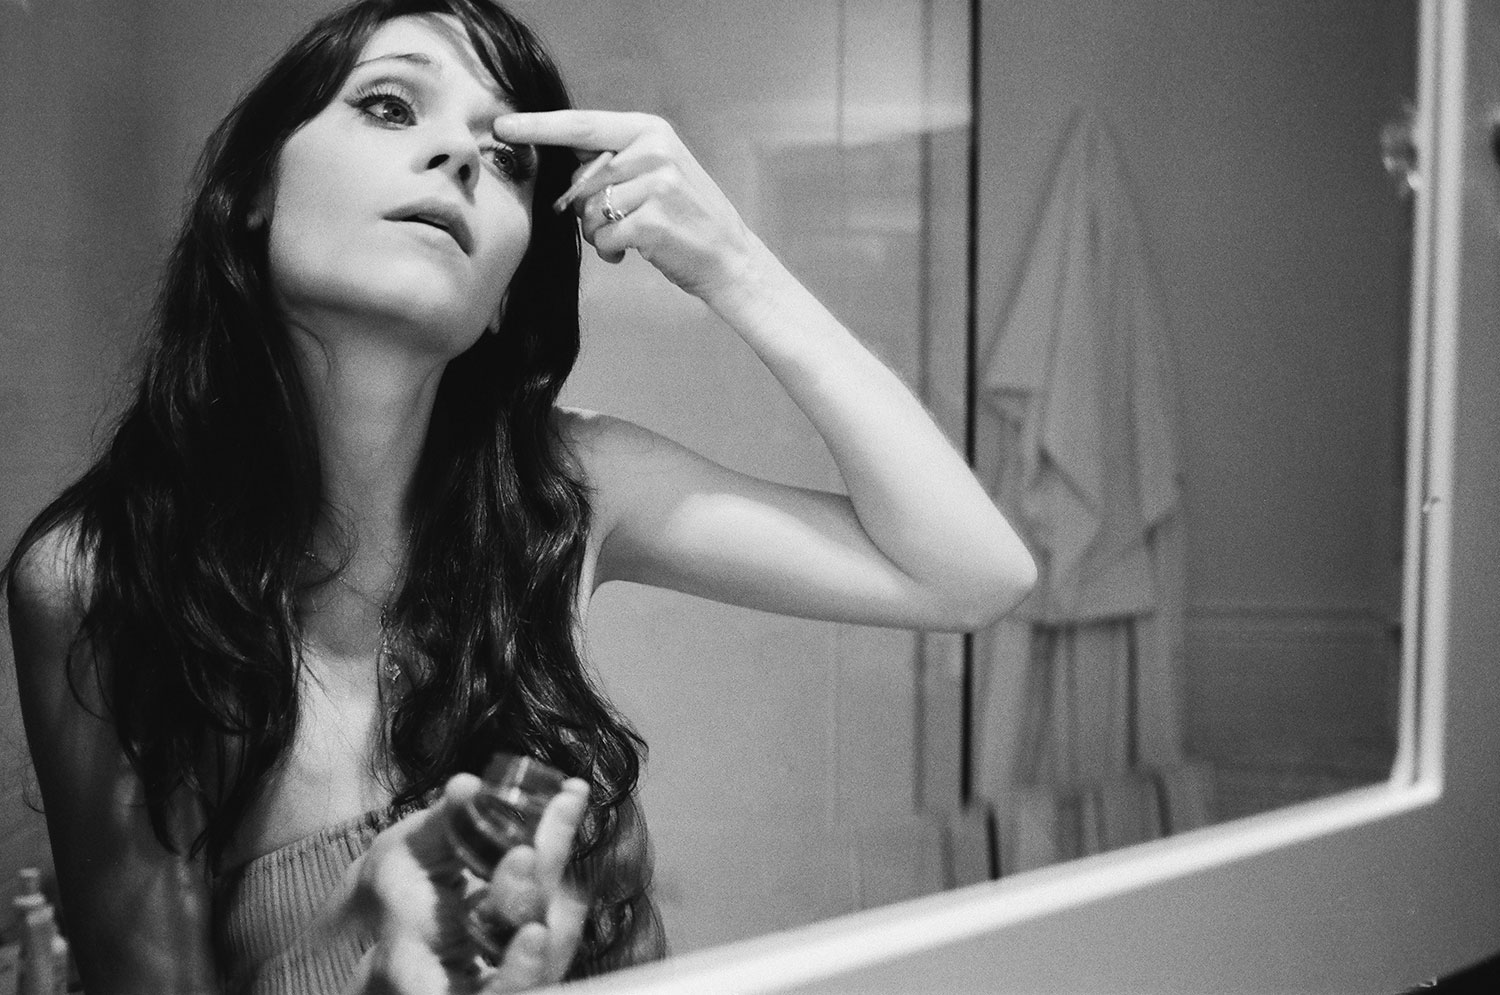 Zoe Deschanel applying makeup in bathroom mirror by Abbey Drucker in black and white